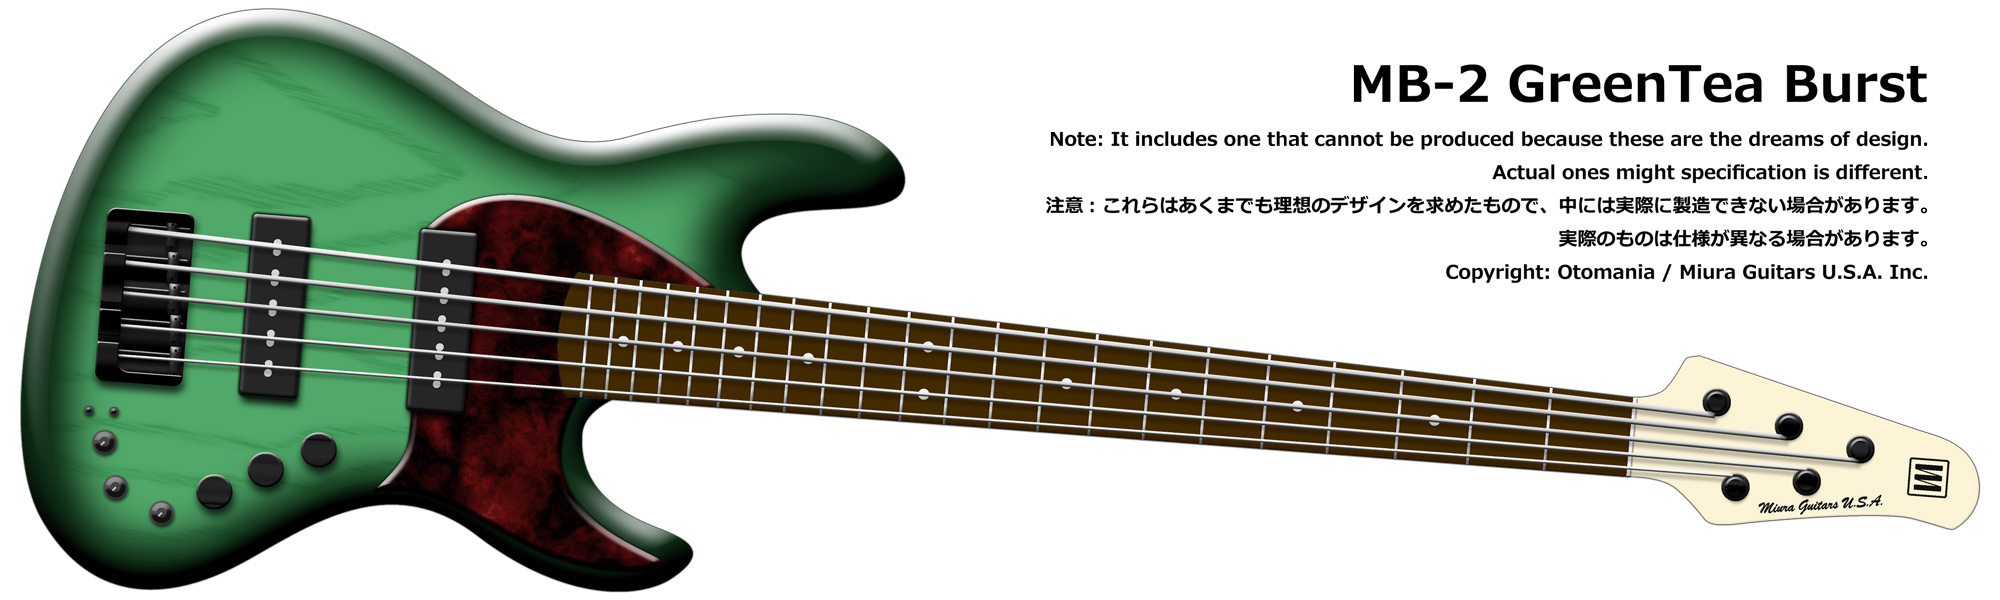 MB-2 GreenTea Burst